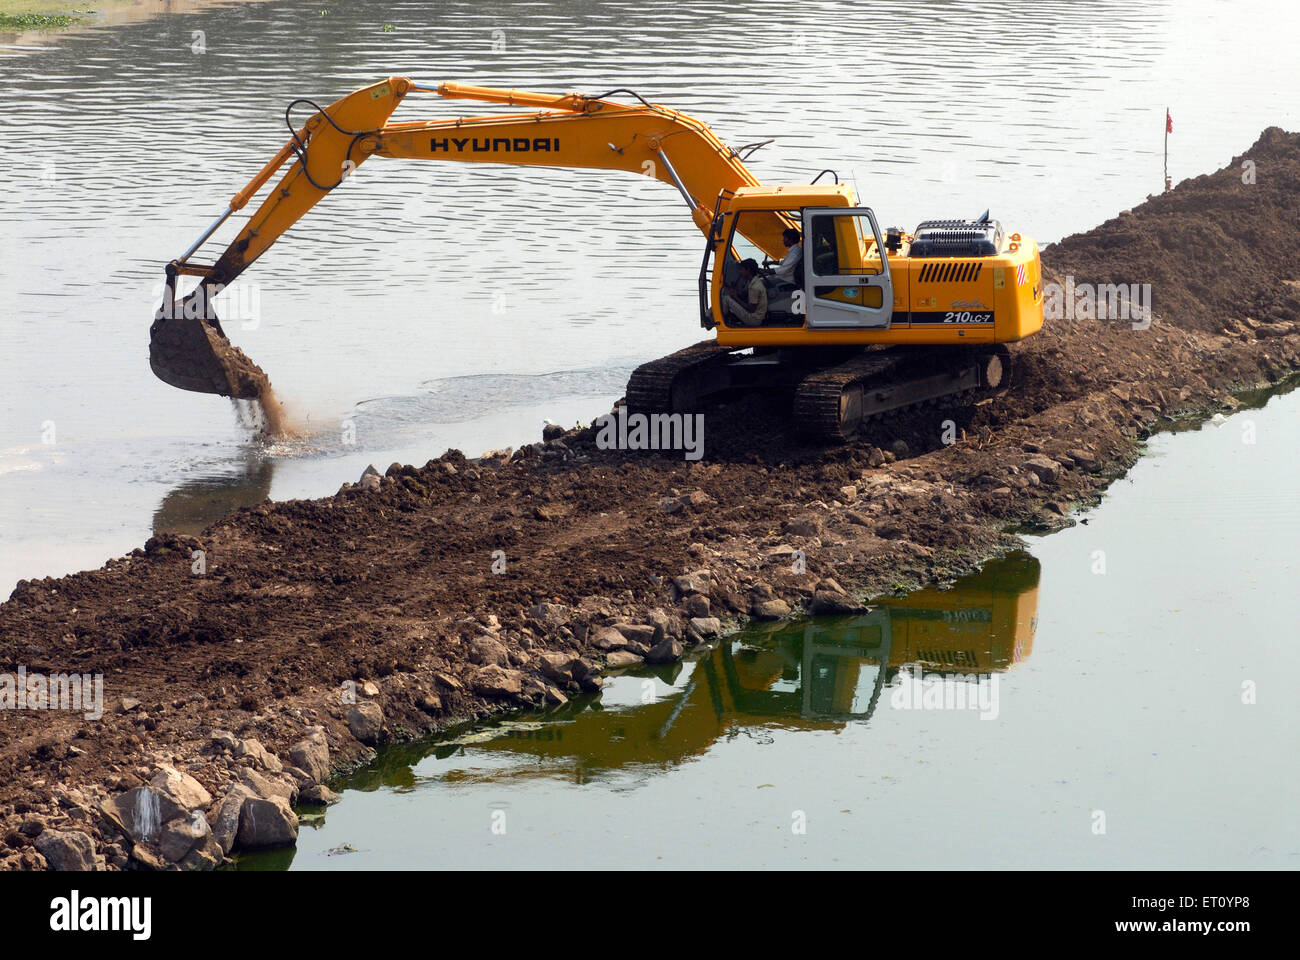 Excavator and digger Bulldozer of HYUNDAI Rolex 210 LC 7 heavy machinery ;  excavation work at bank river Mutha - Stock Image